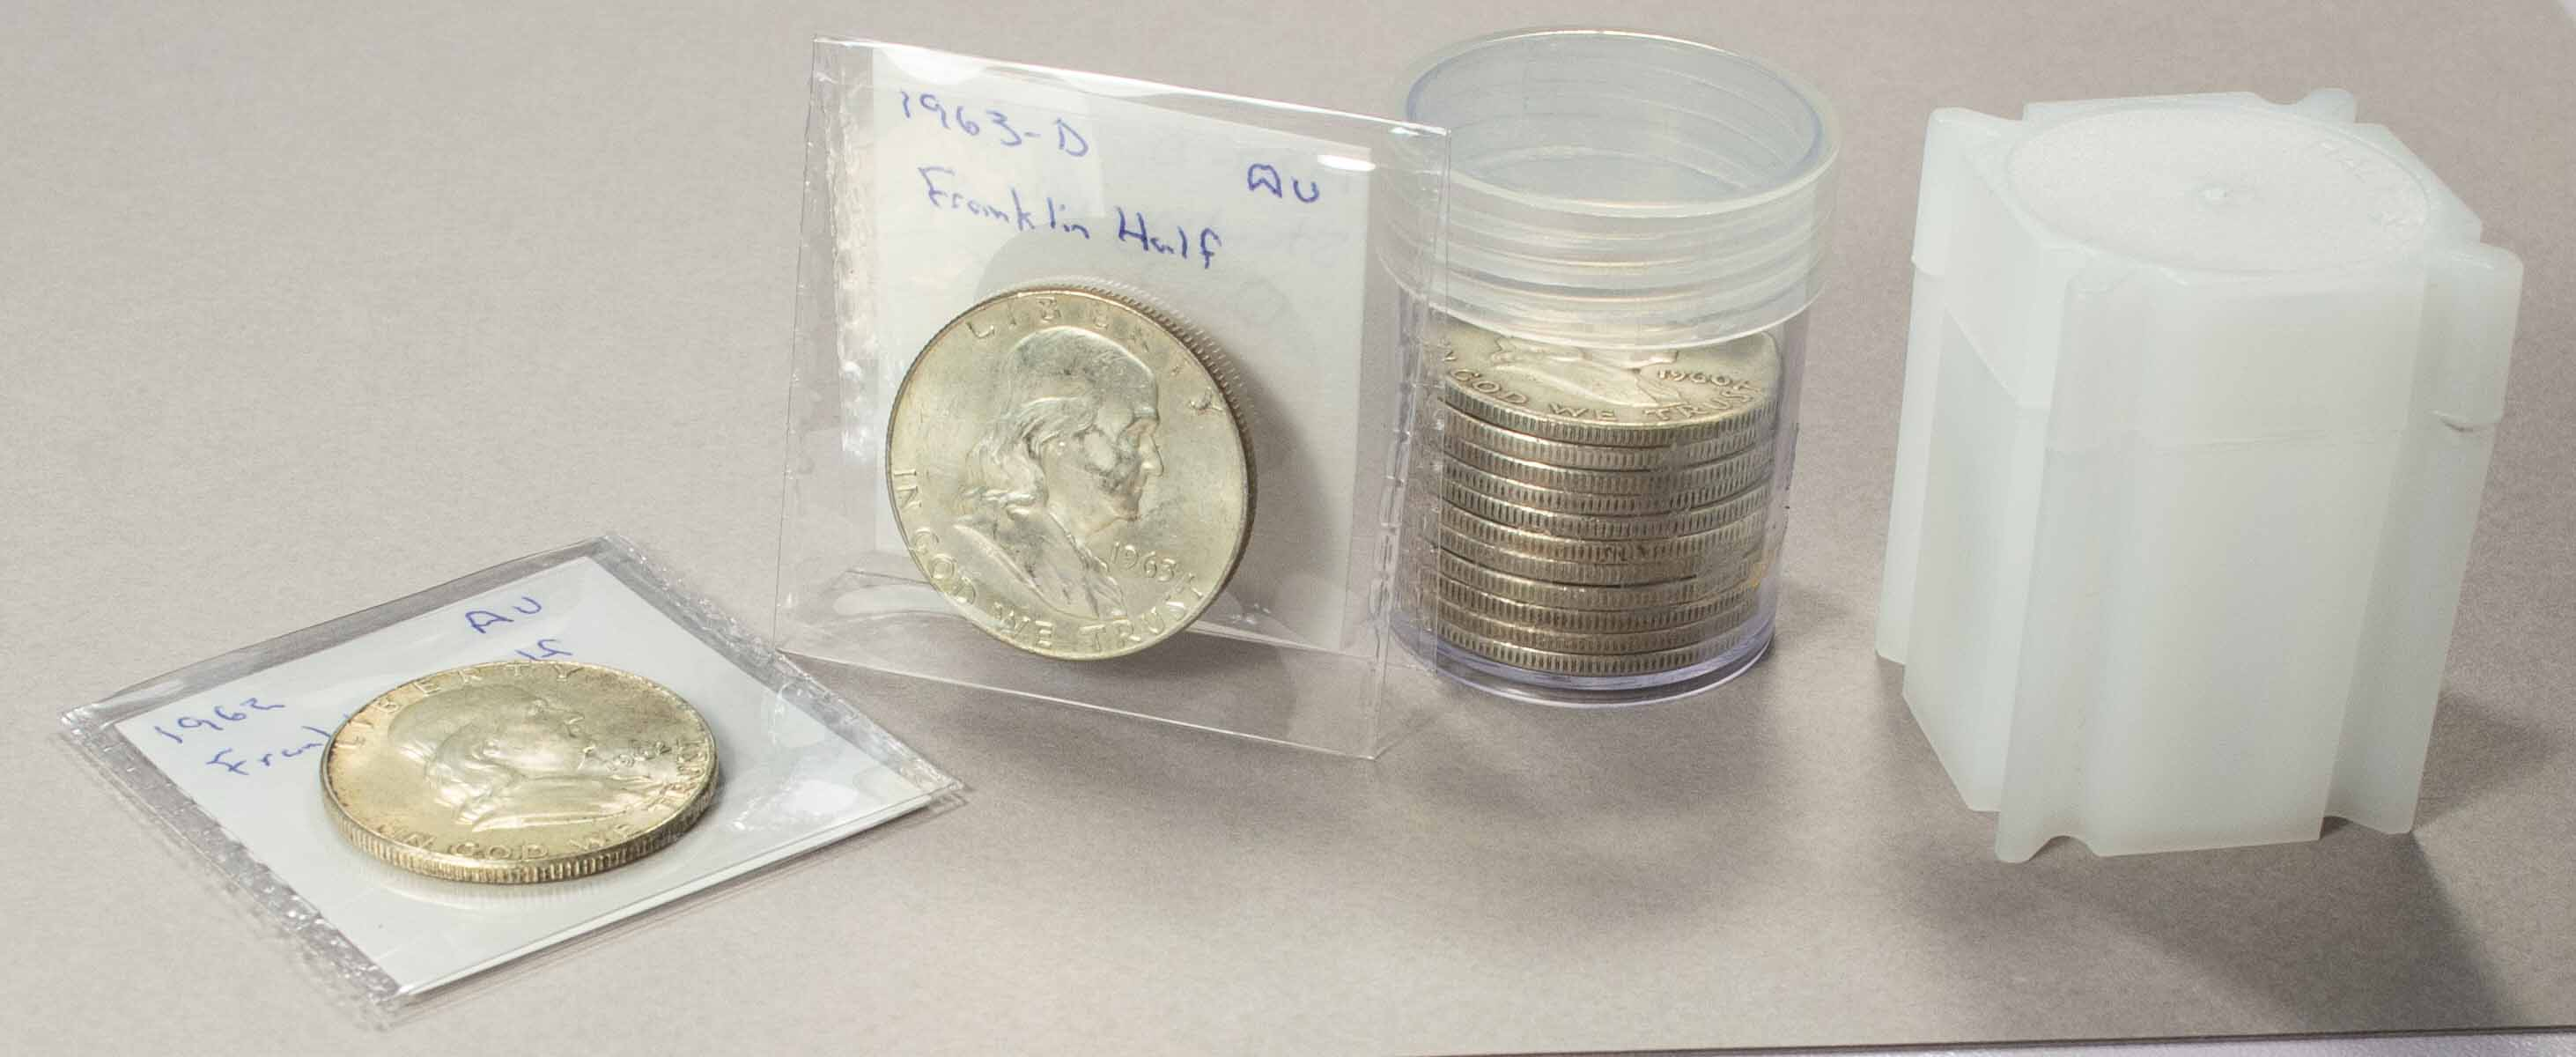 Saflips and Coin Tubes - Half Dollars